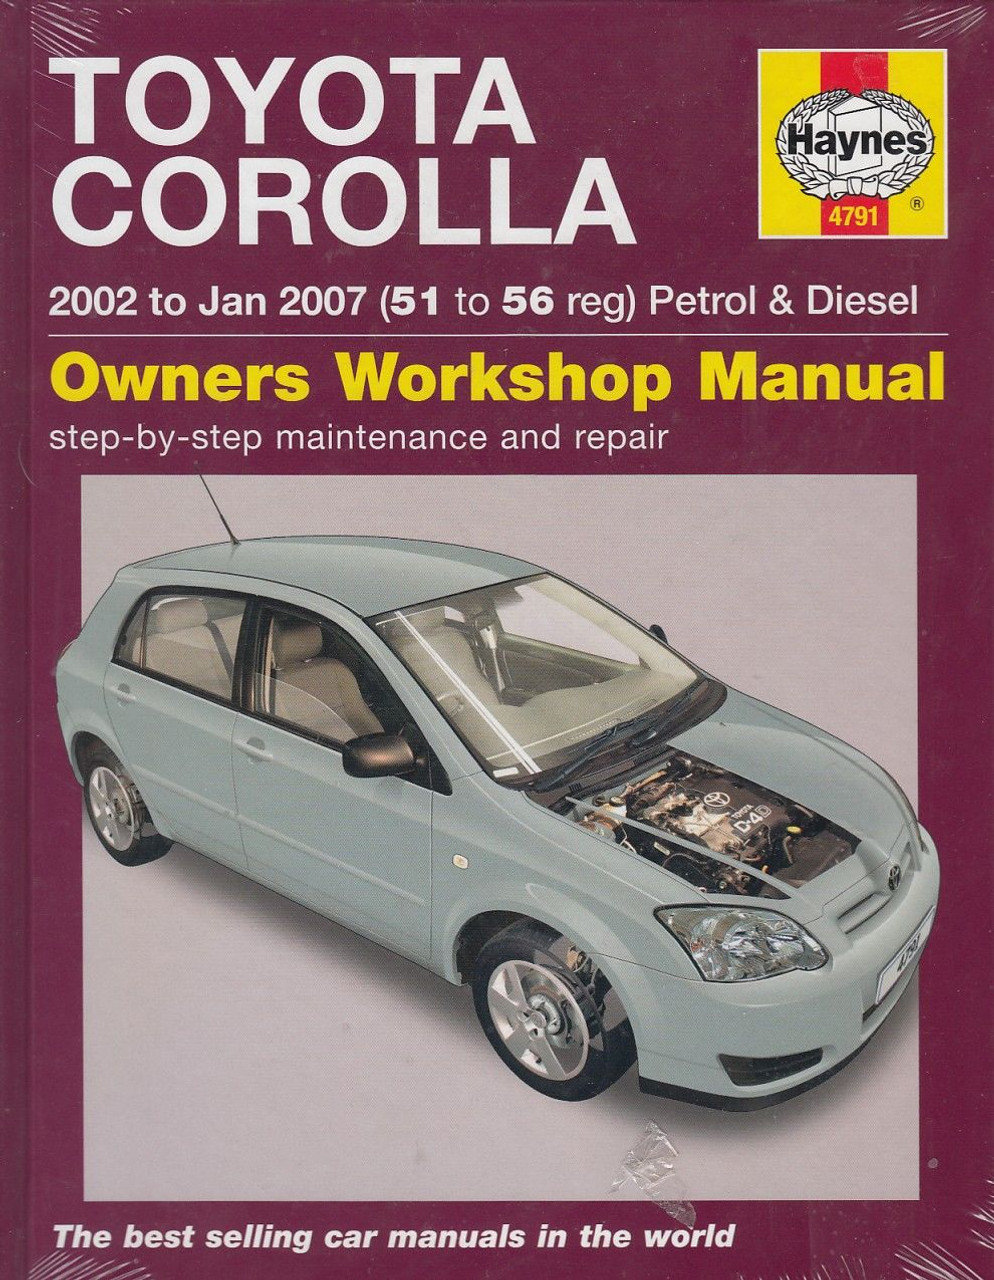 Toyota Corolla Repair Manual: Lighting system